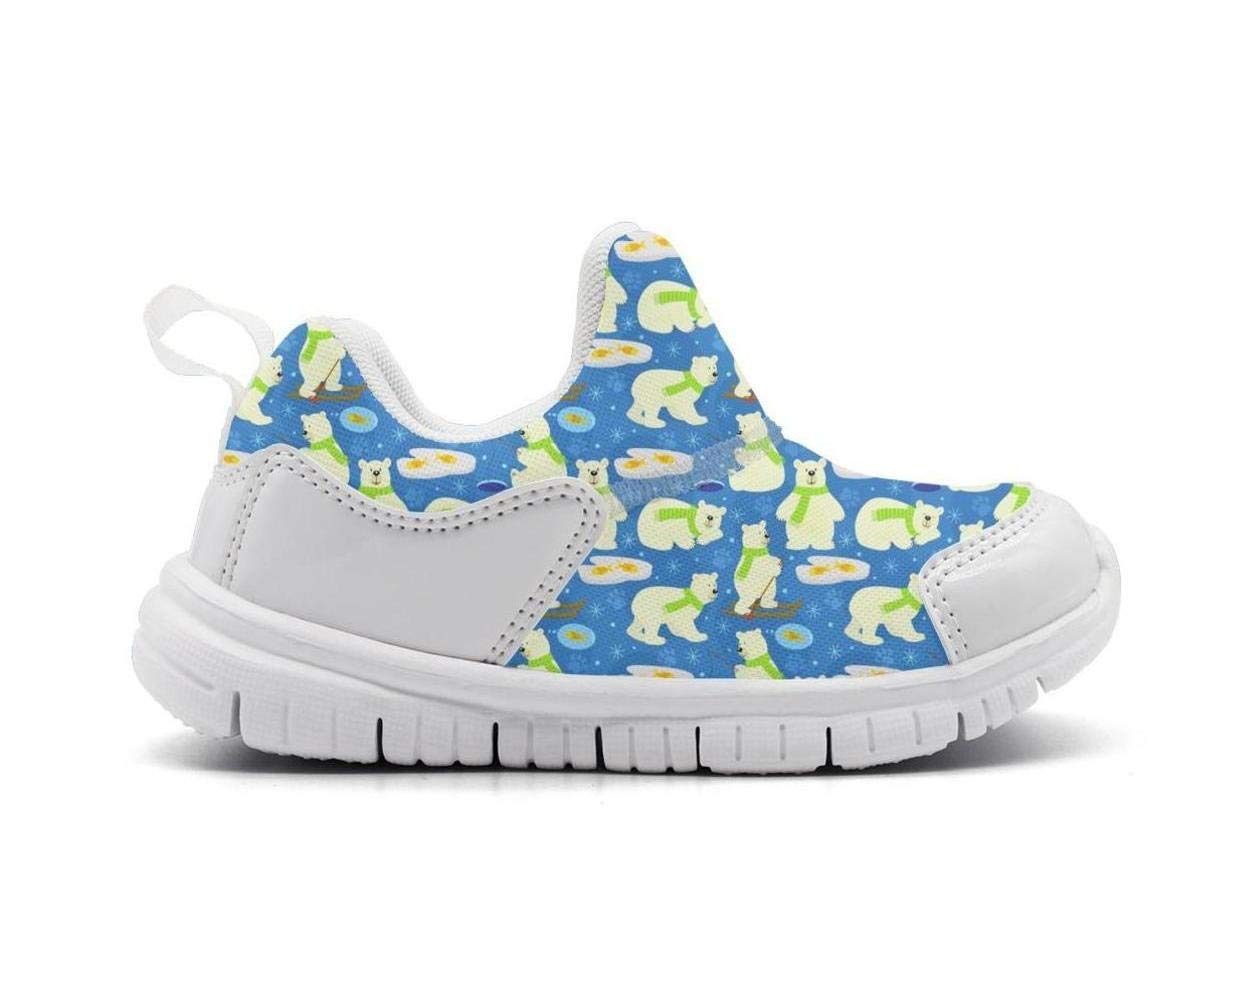 ONEYUAN Children Polar Bear go Fishing Kid Casual Lightweight Sport Shoes Sneakers Walking Athletic Shoes